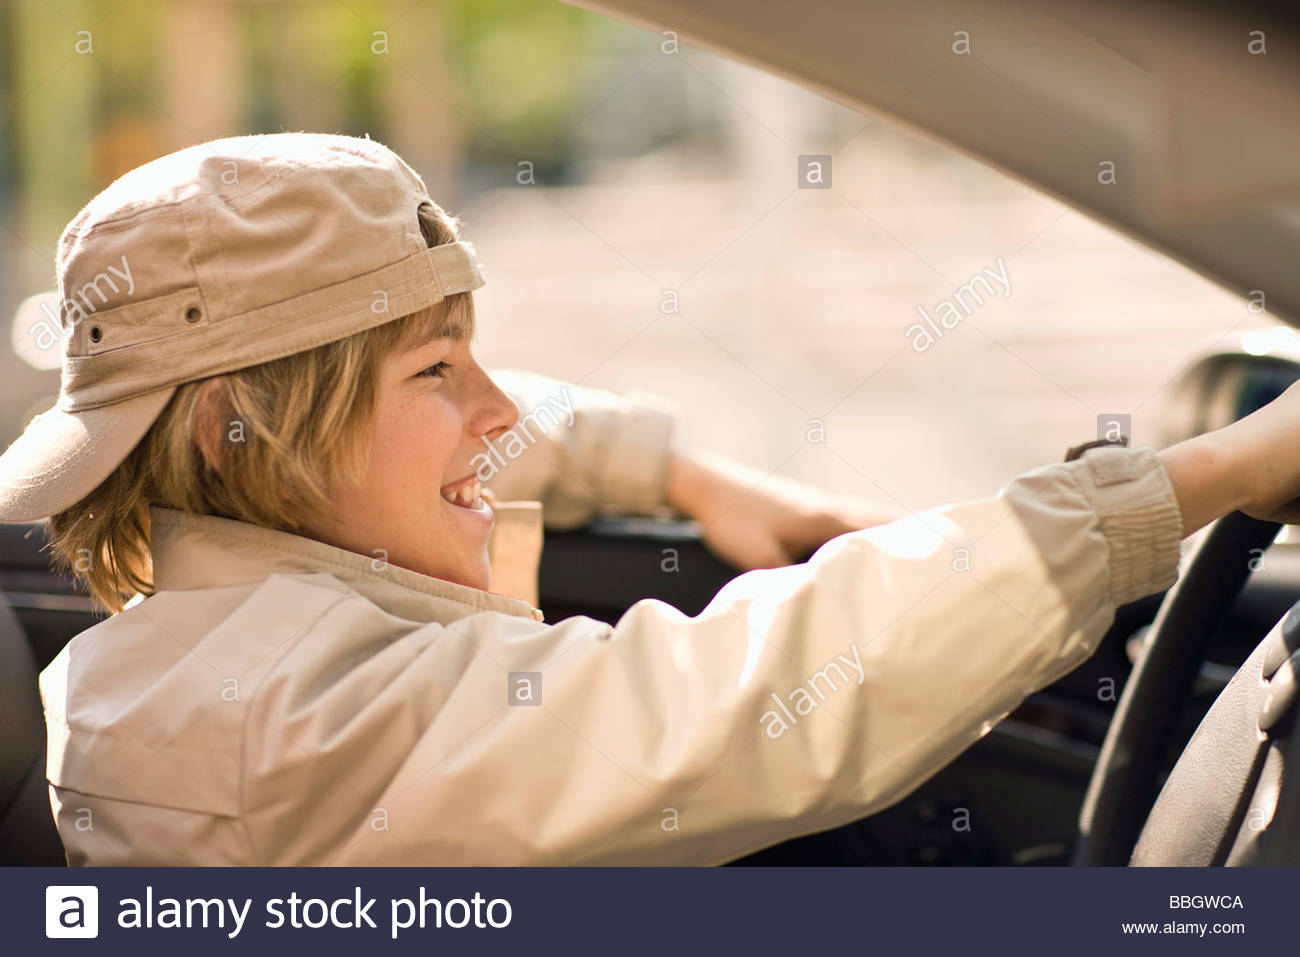 Happy pre-adolescent boy sitting convertible, Munich, Germany - Stock Image